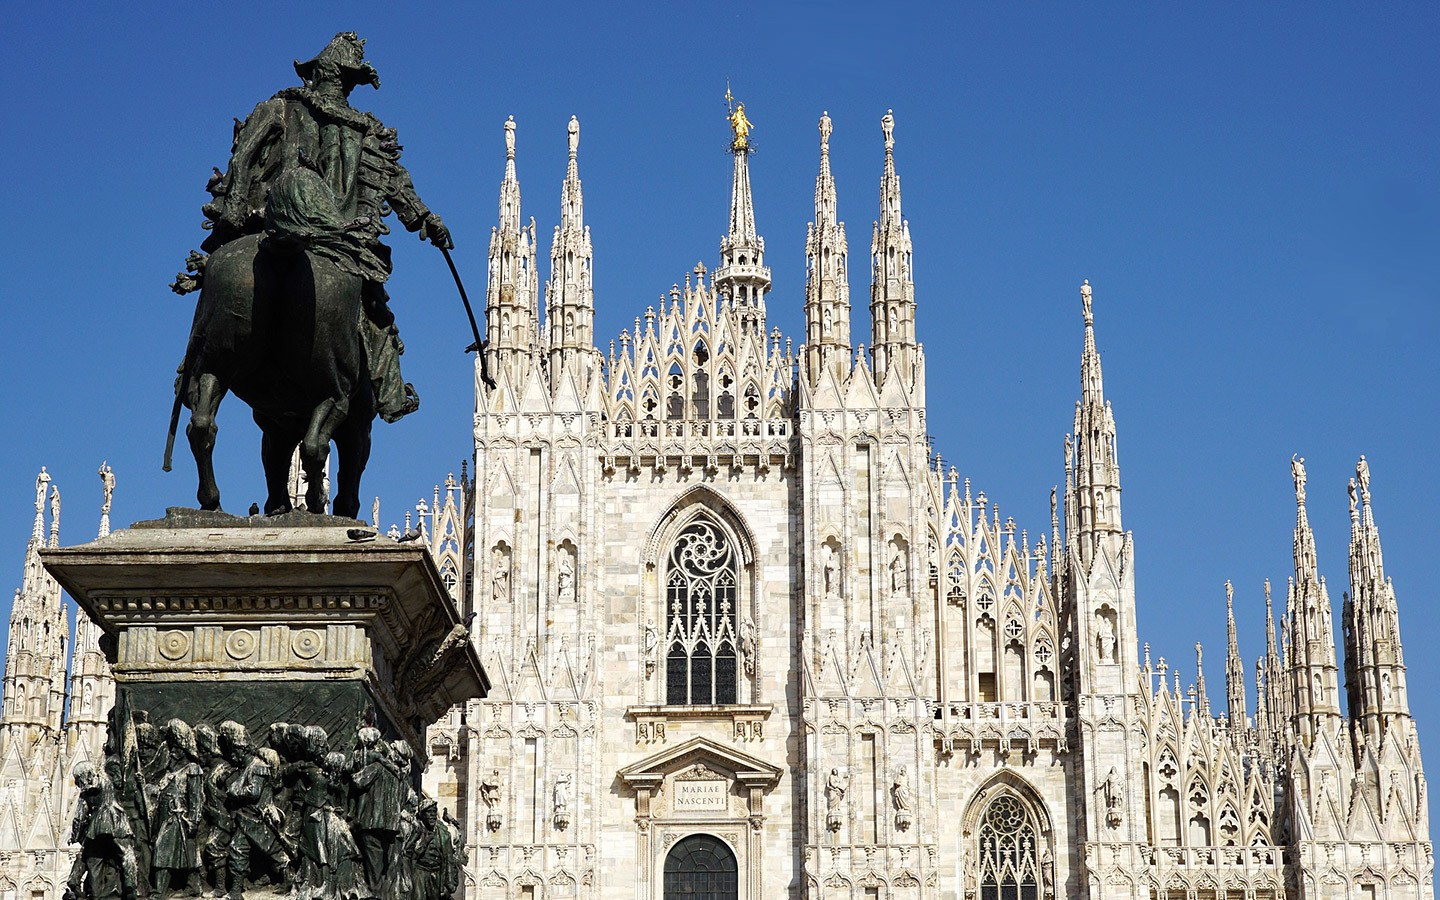 The Duomo di Milano – Milan cathedral